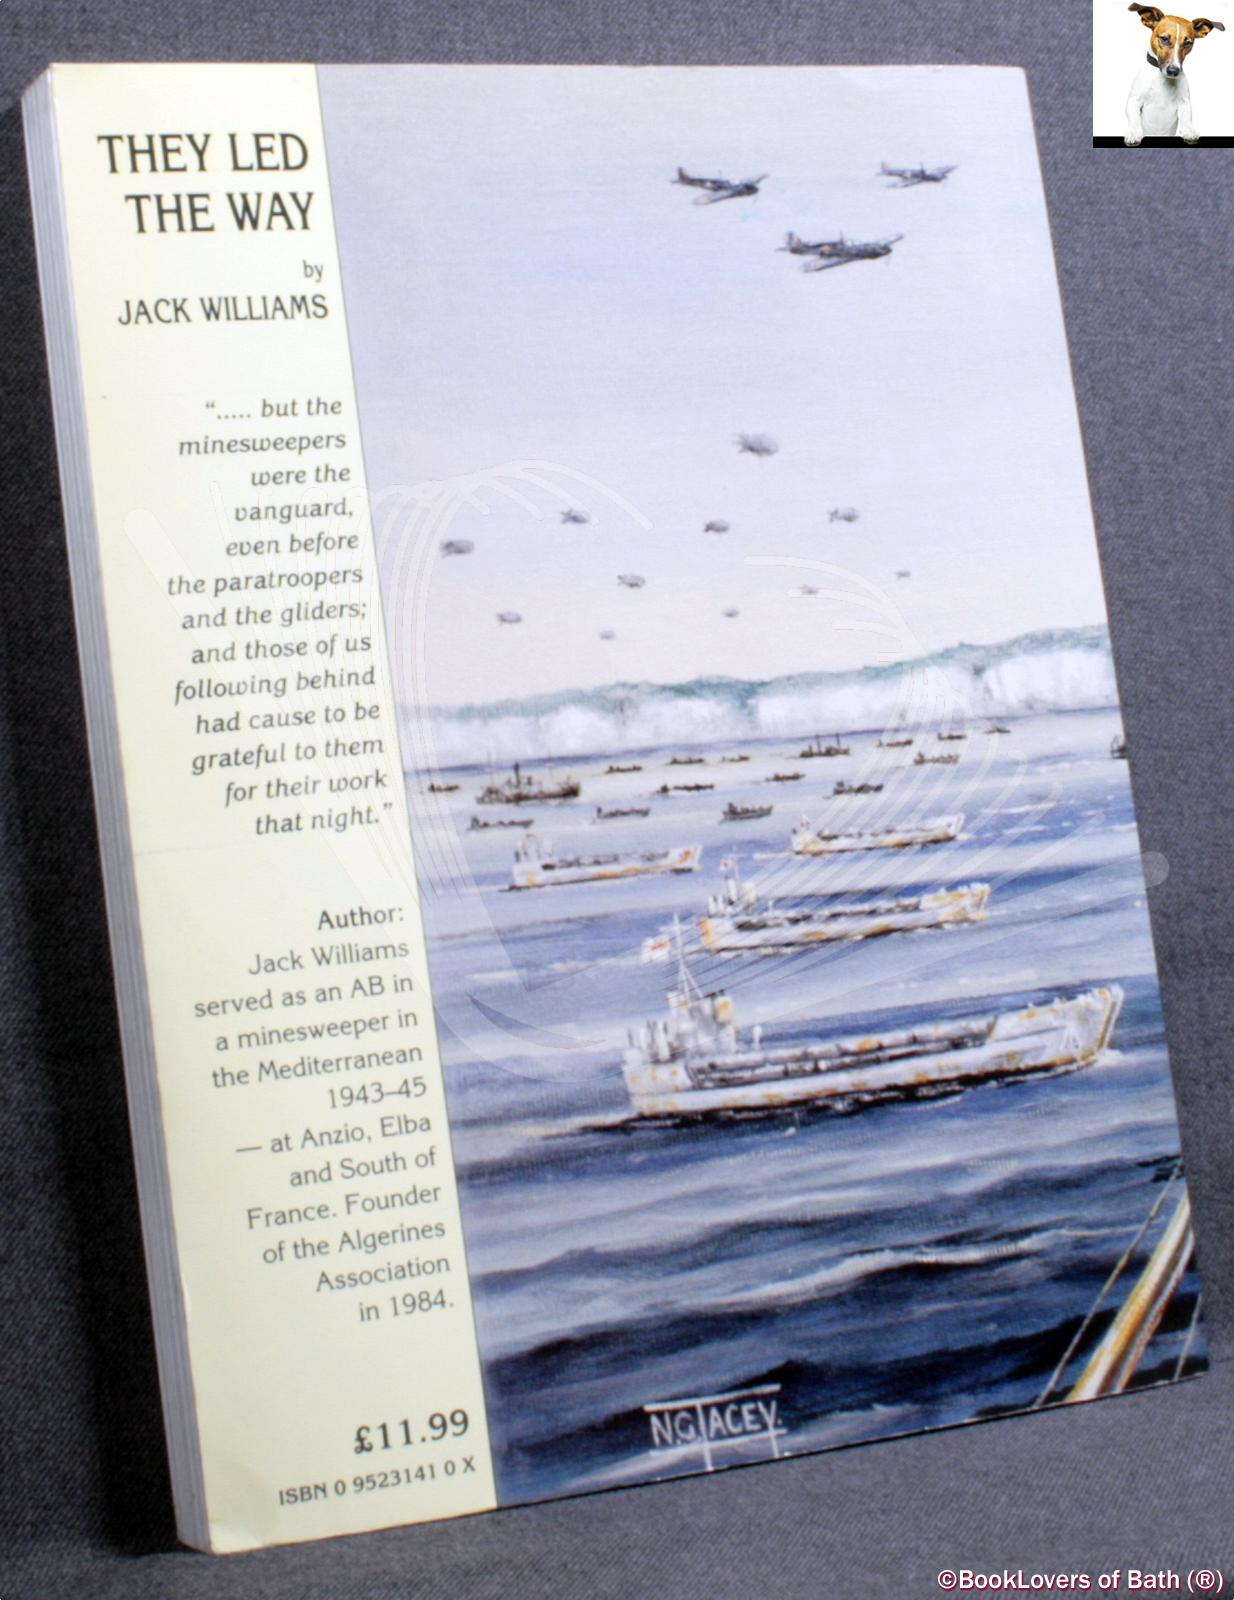 They Led the Way: The Fleet Minesweepers at Normandy, June 1944 J